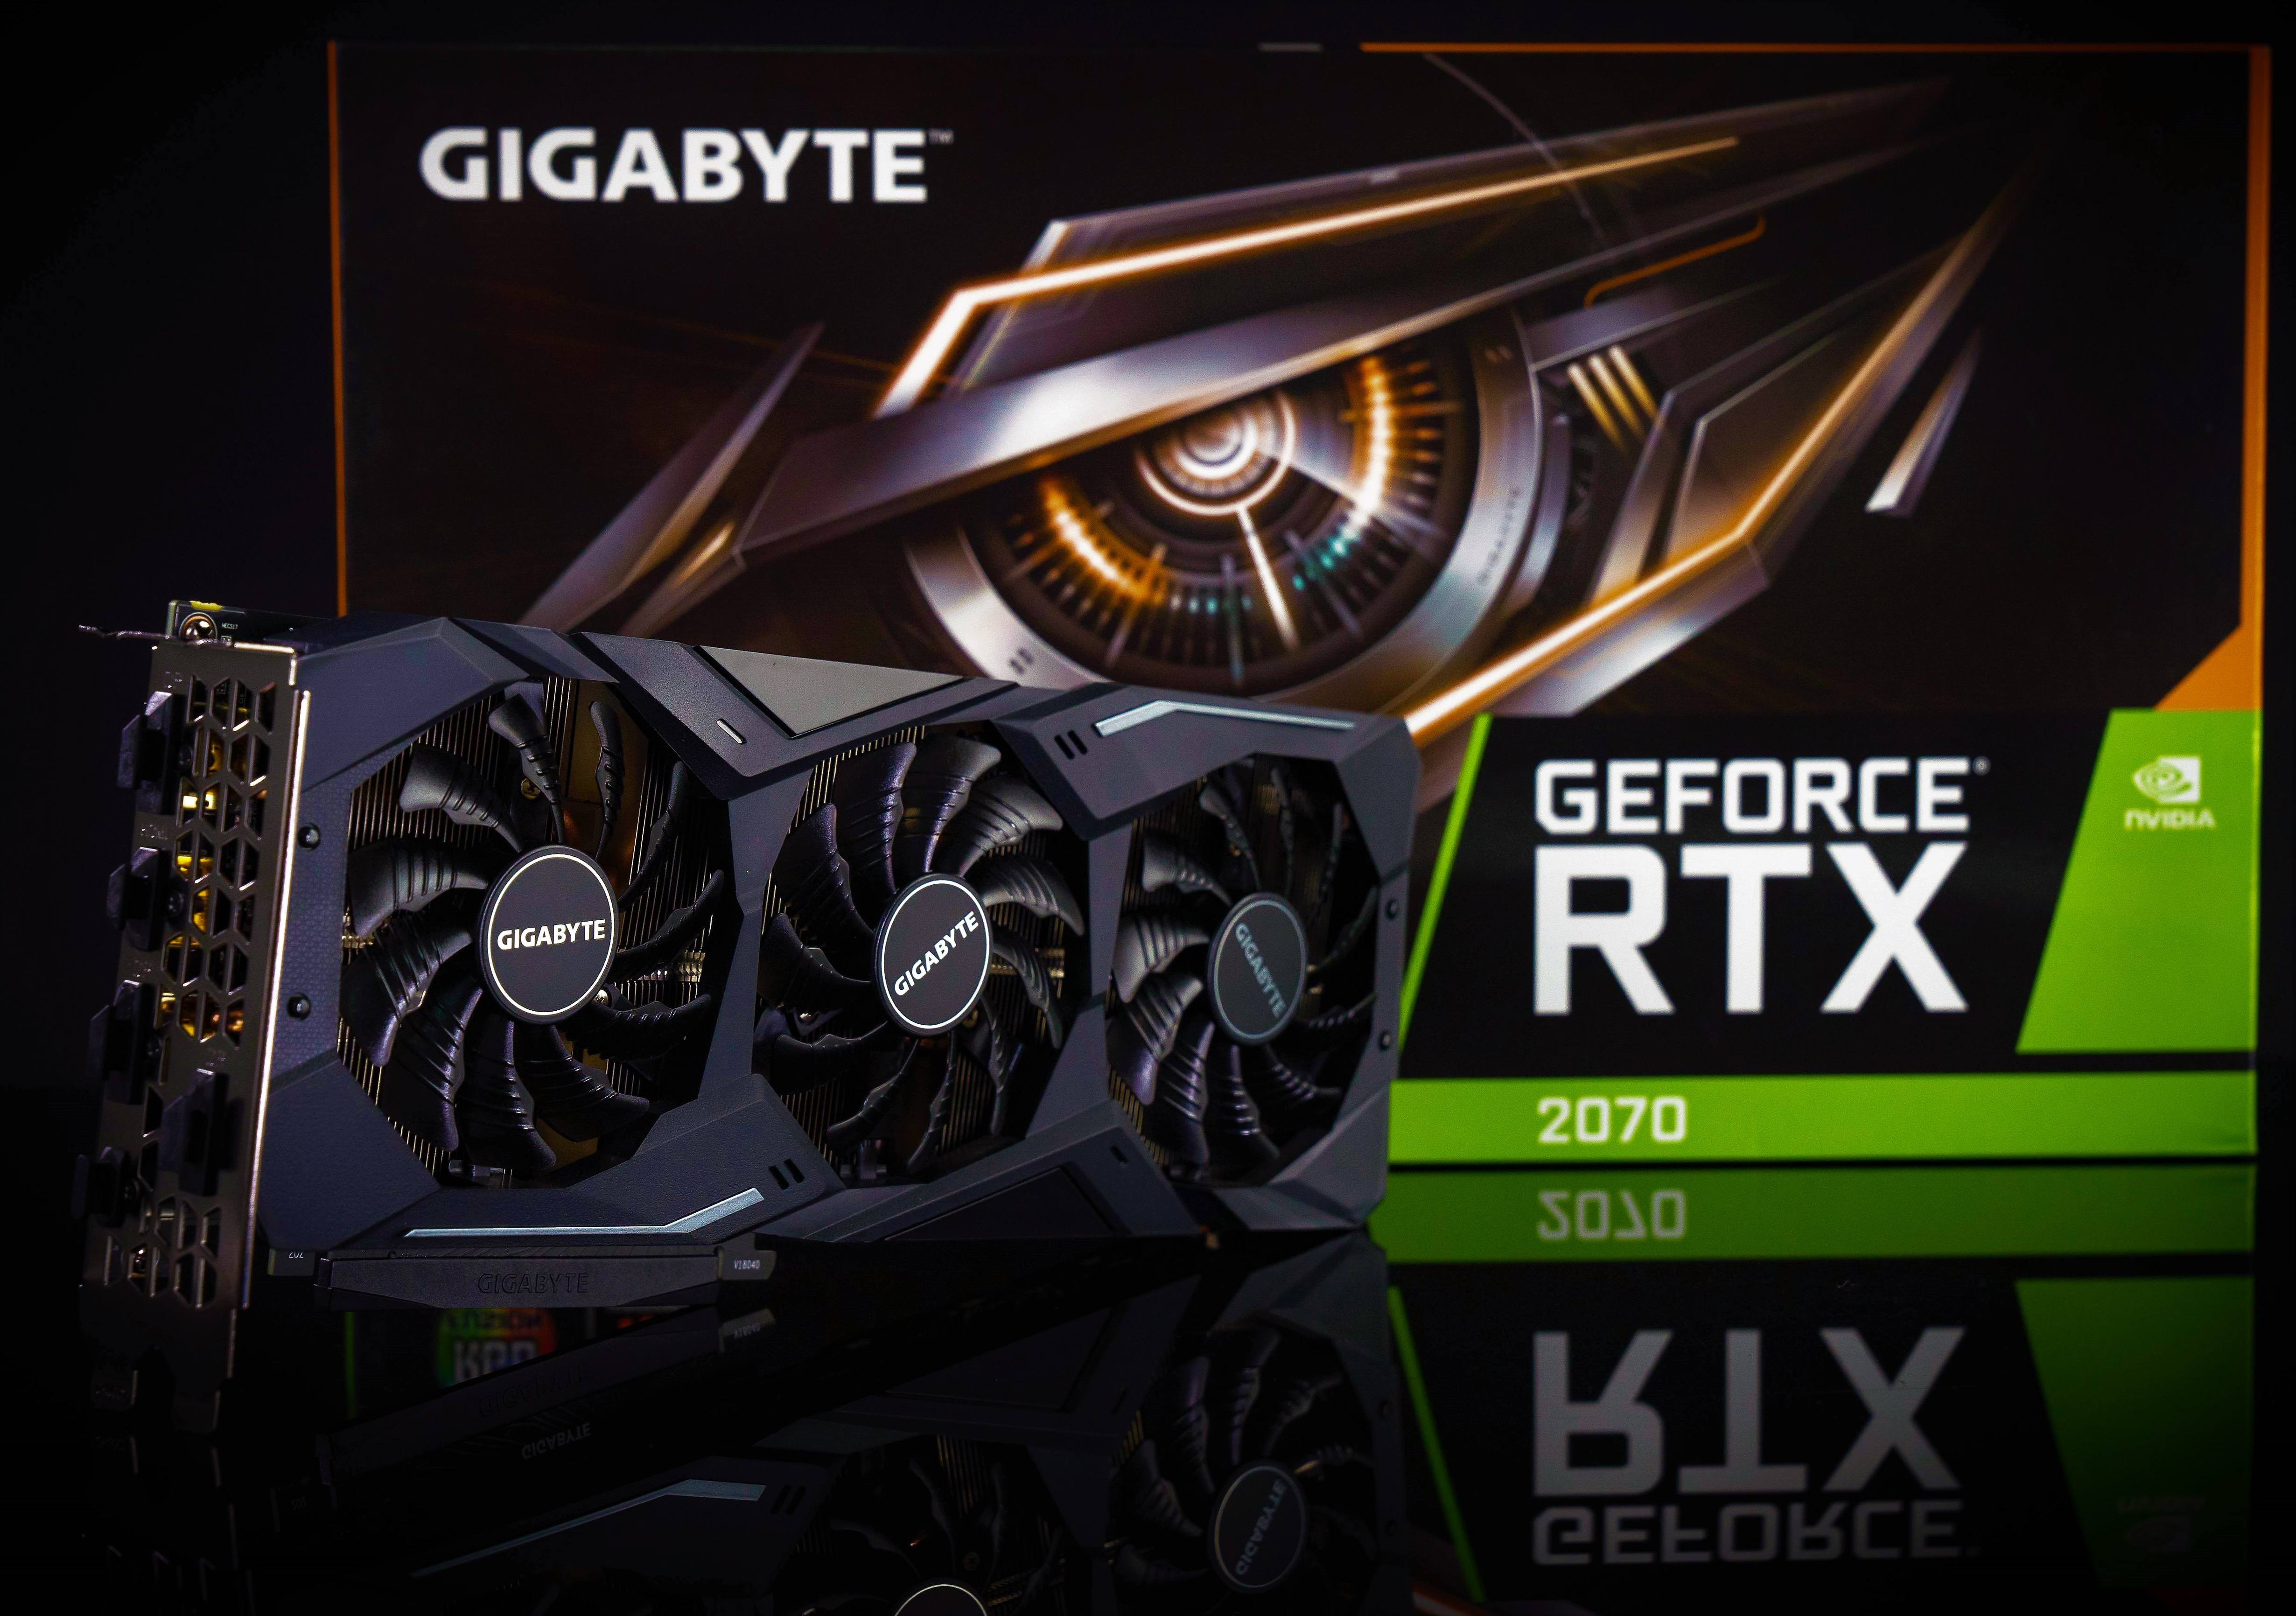 Gigabyte RTX 2070 Windforce